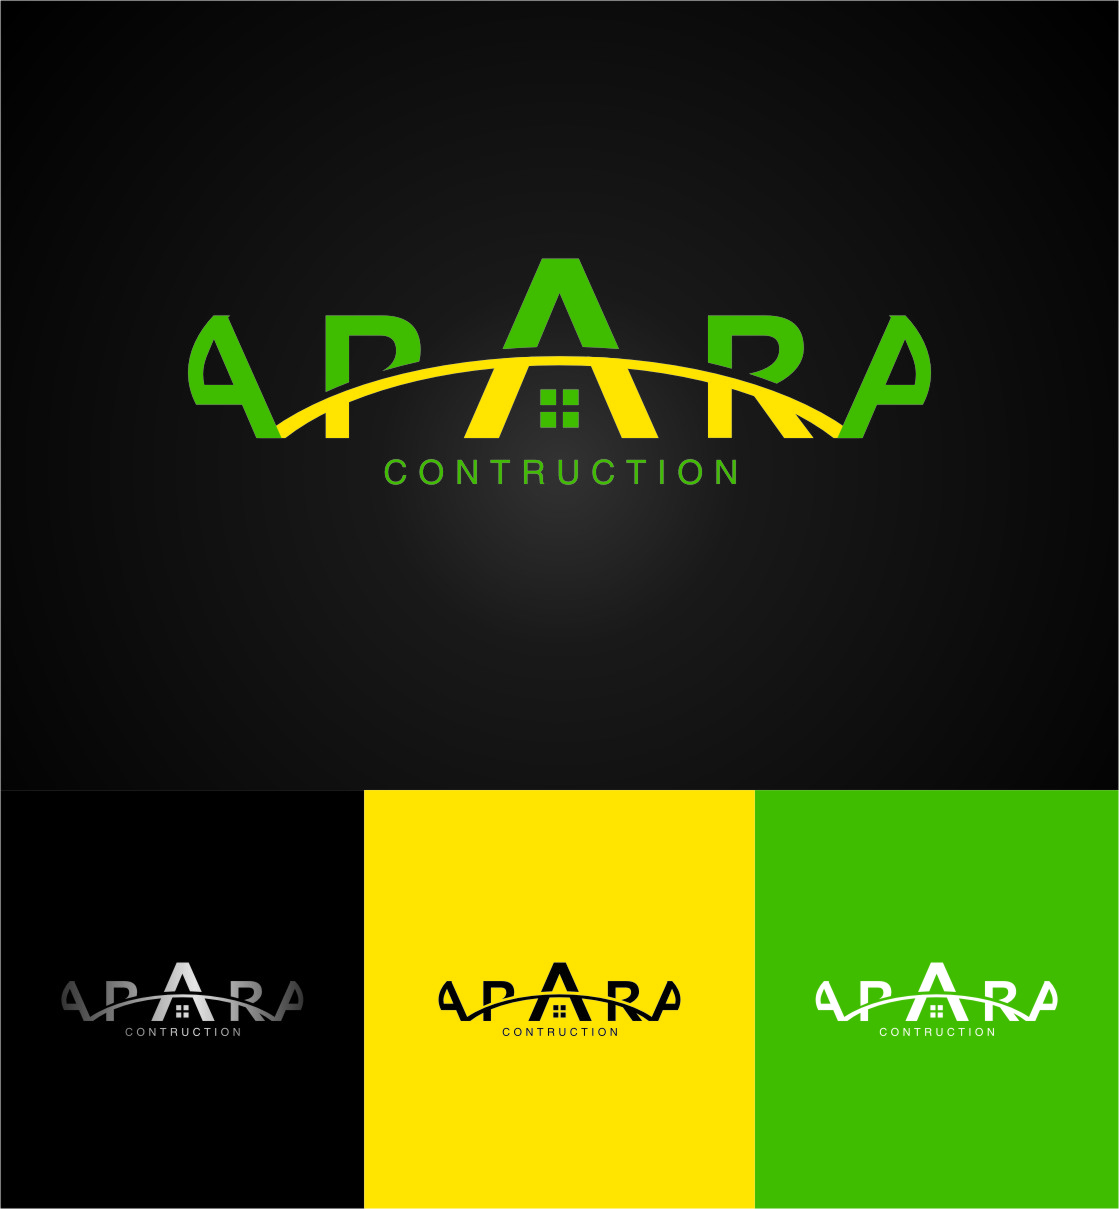 Logo Design by Ngepet_art - Entry No. 134 in the Logo Design Contest Apara Construction Logo Design.